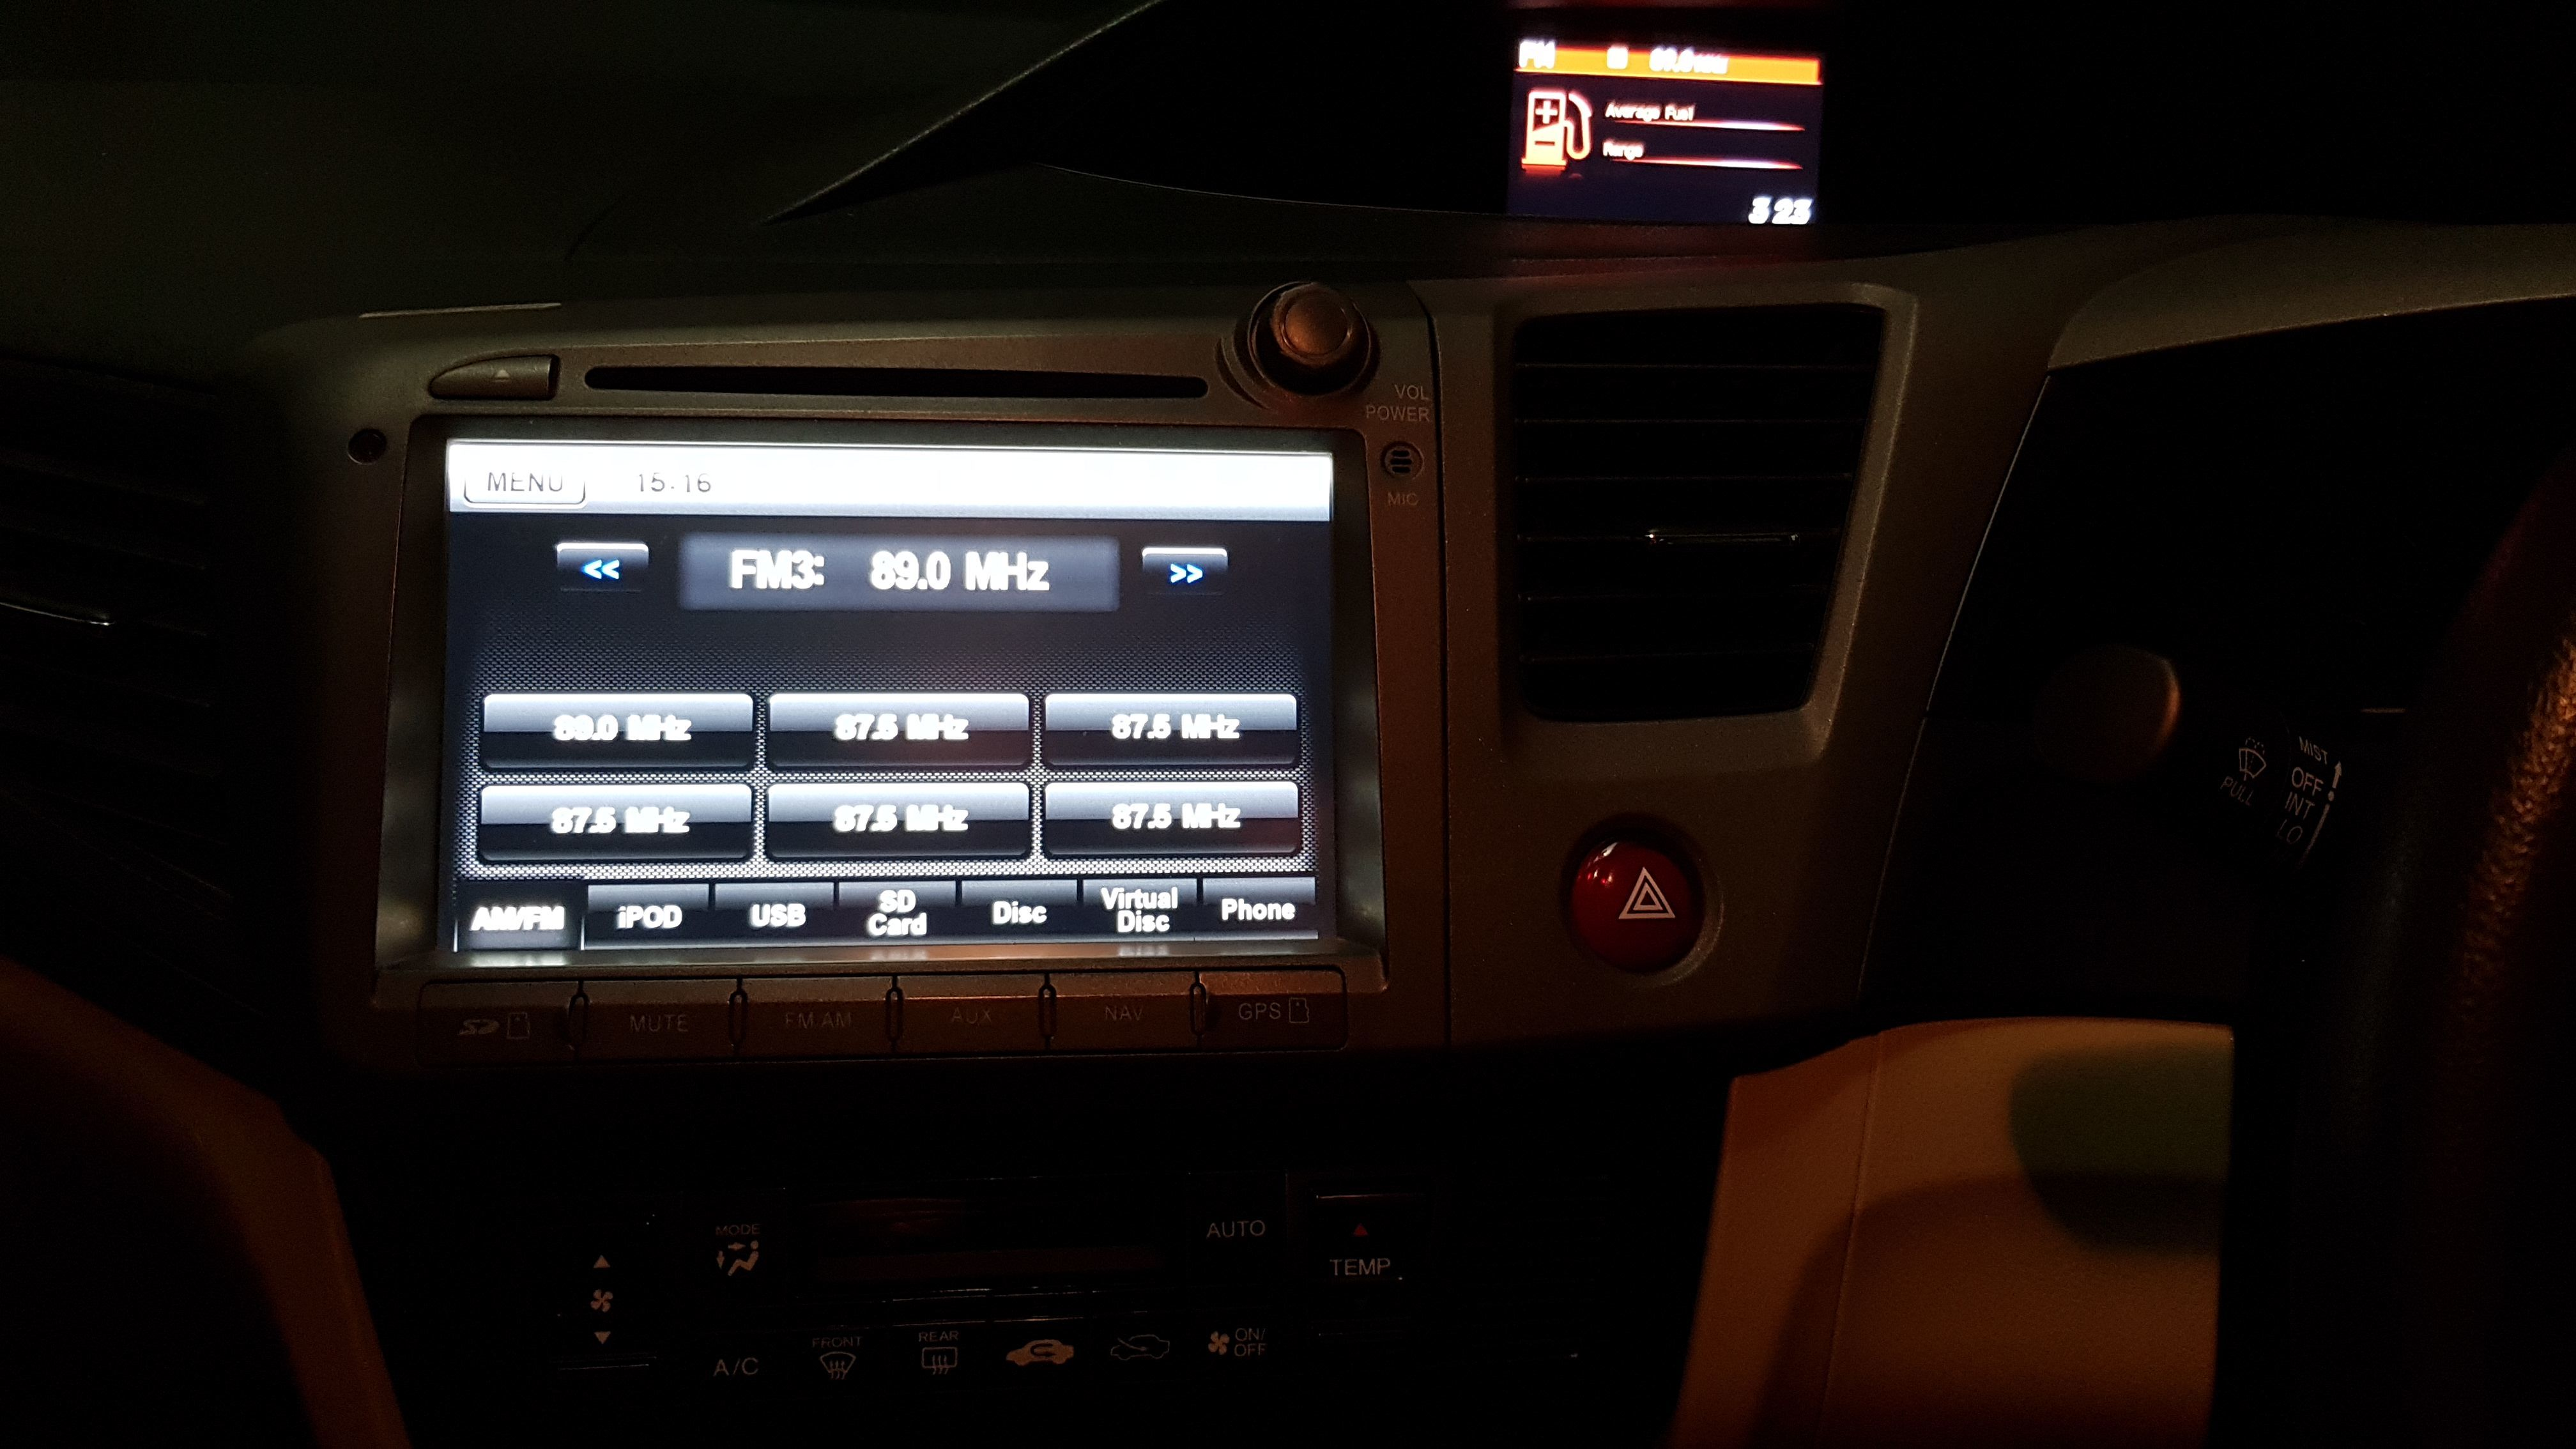 Honda LCD Screen Stuck After Inserting CD into built in Player - Honda - PakWheels Forums